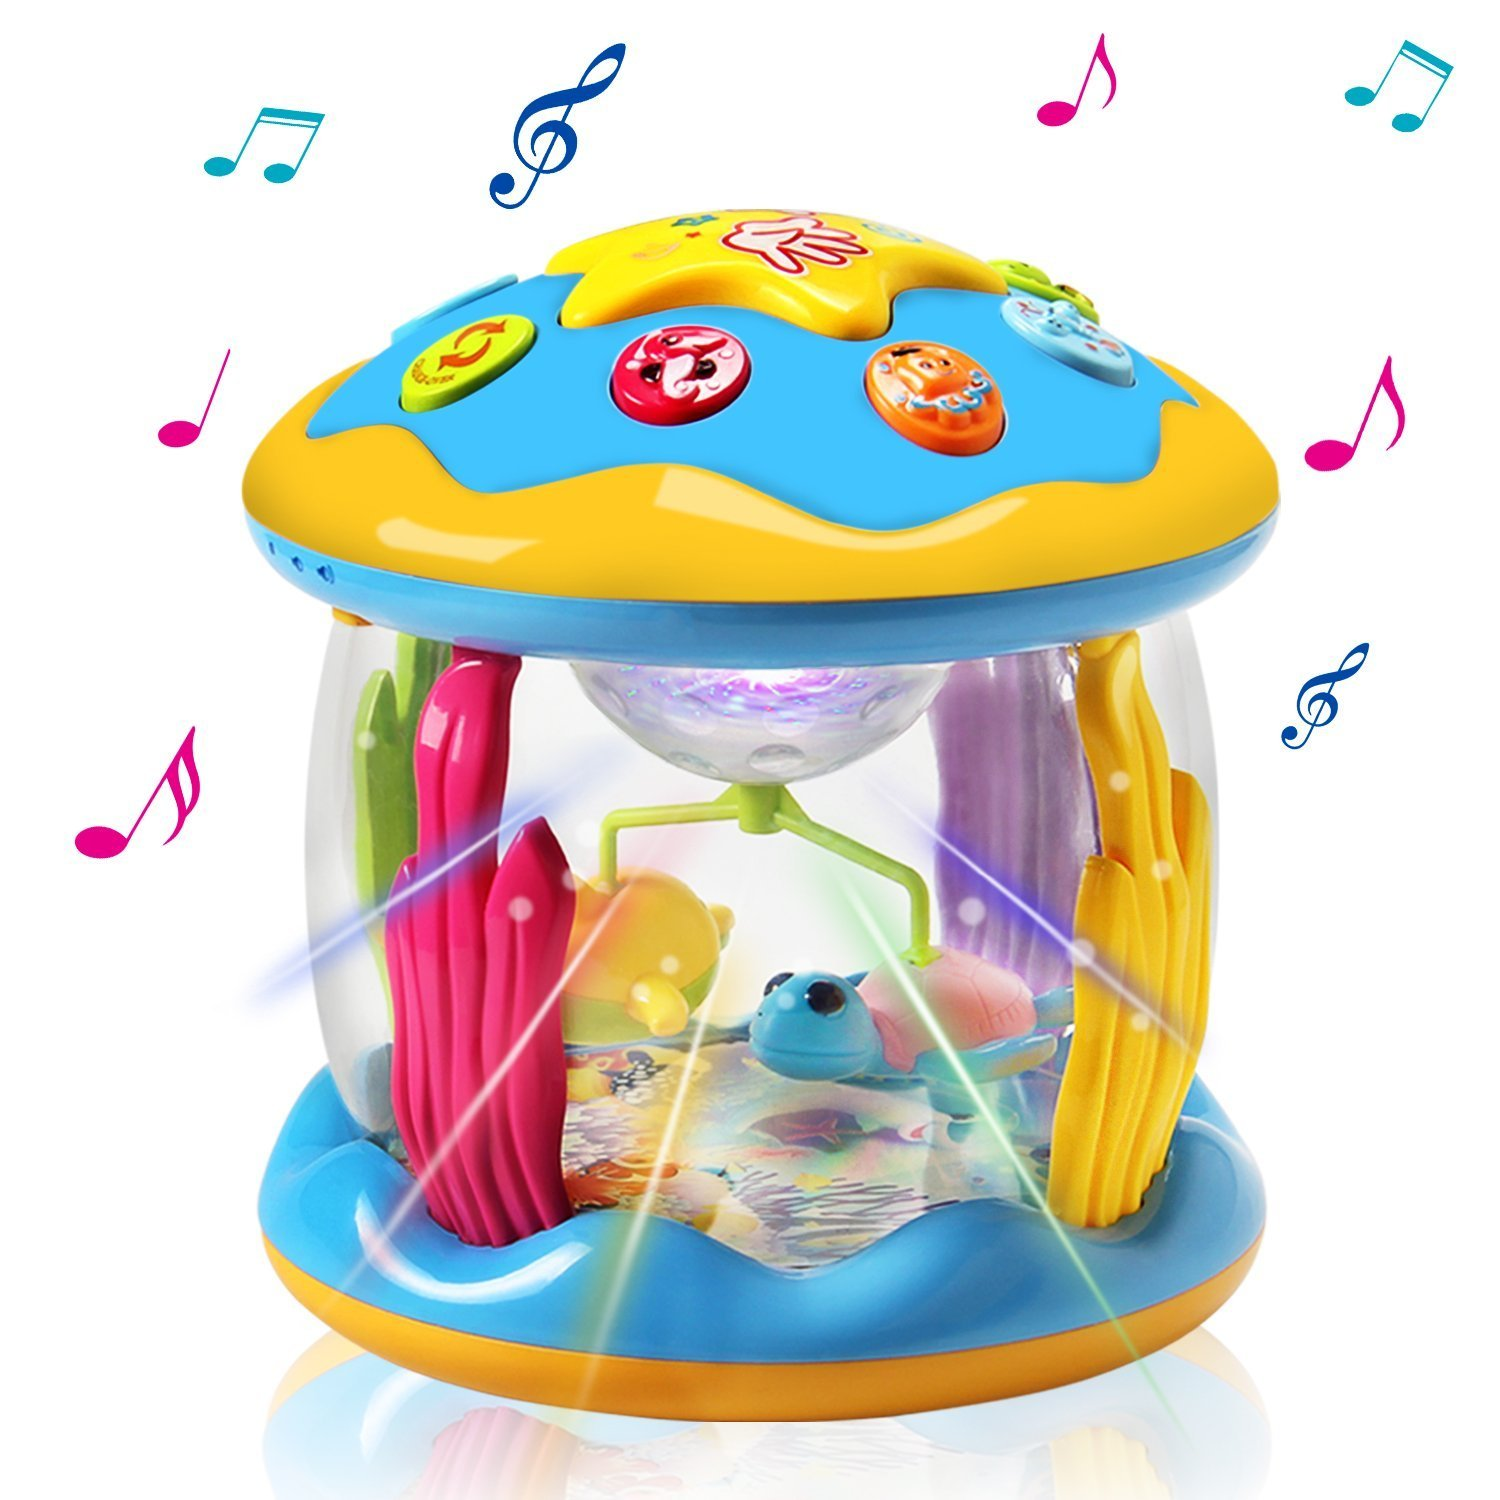 MaMiBabys Baby Toys Ocean Park Rotating Projector,Various Pacify Music & Light,Super Fun,Early Educational Toys for 1 2 3 Year Girls and Boys Kids or Toddlers(Random Colour) MID